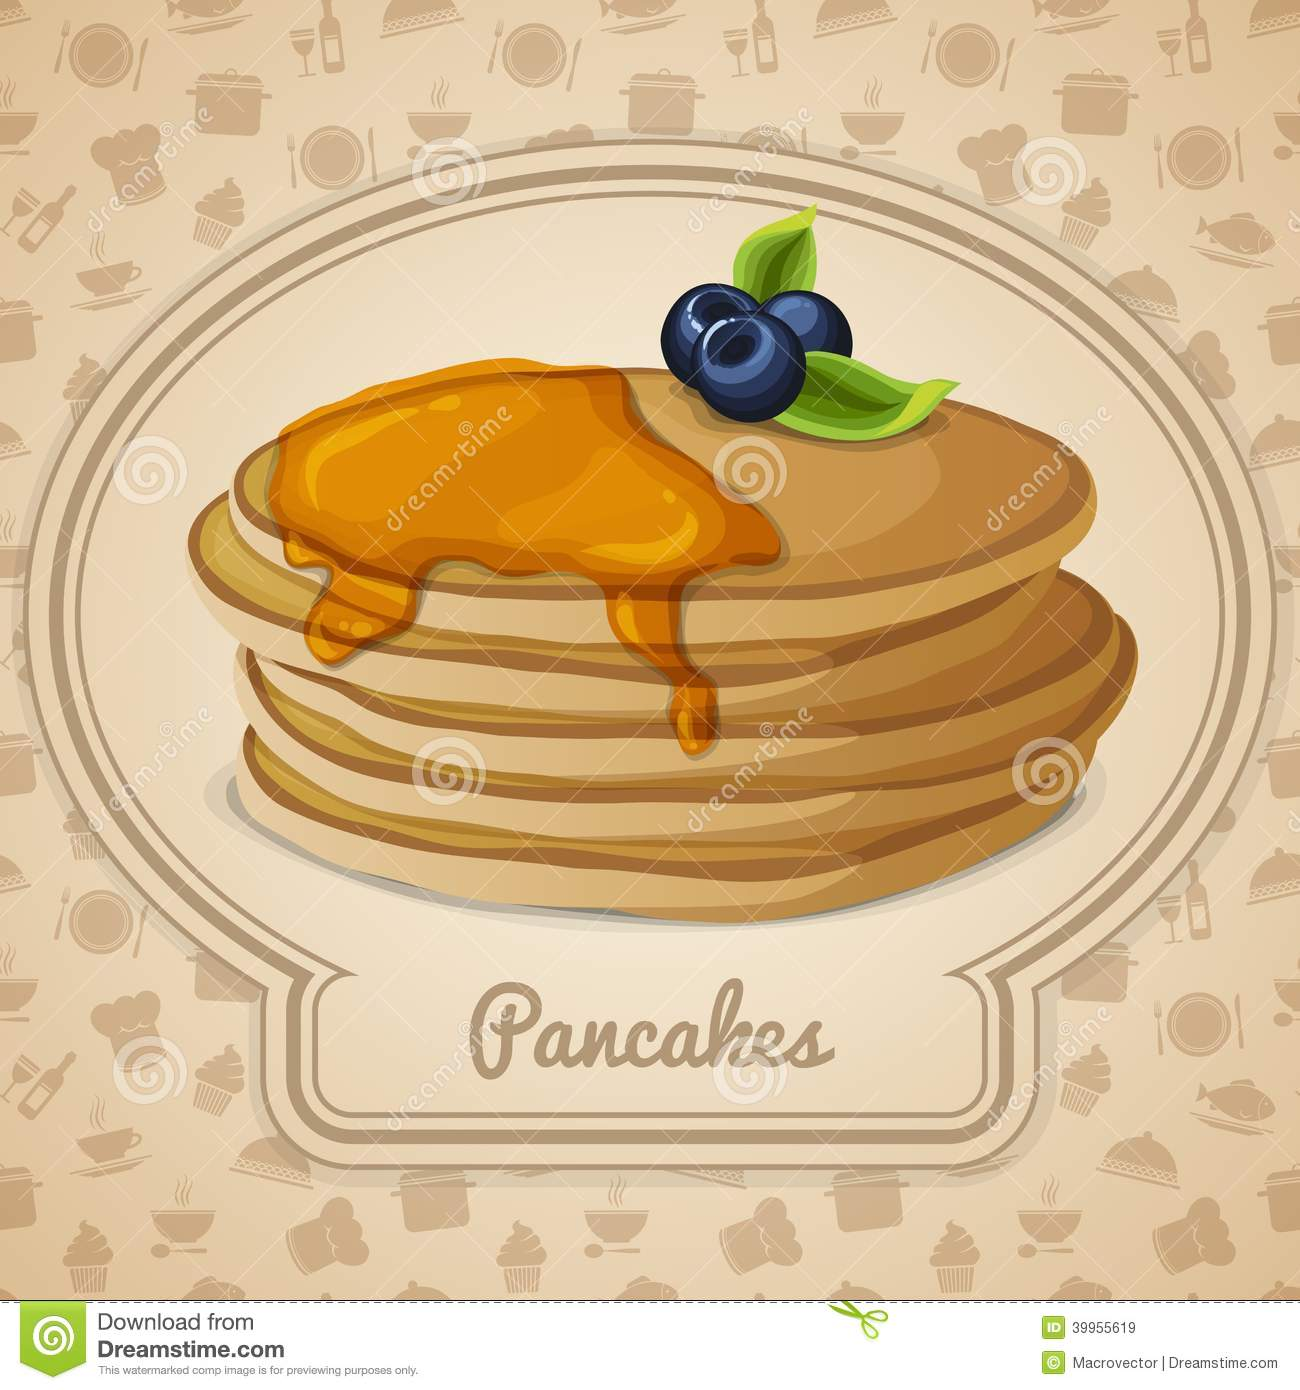 Restaurant Mint Pancakes With Syrup Poster Stock Vector. Image Of